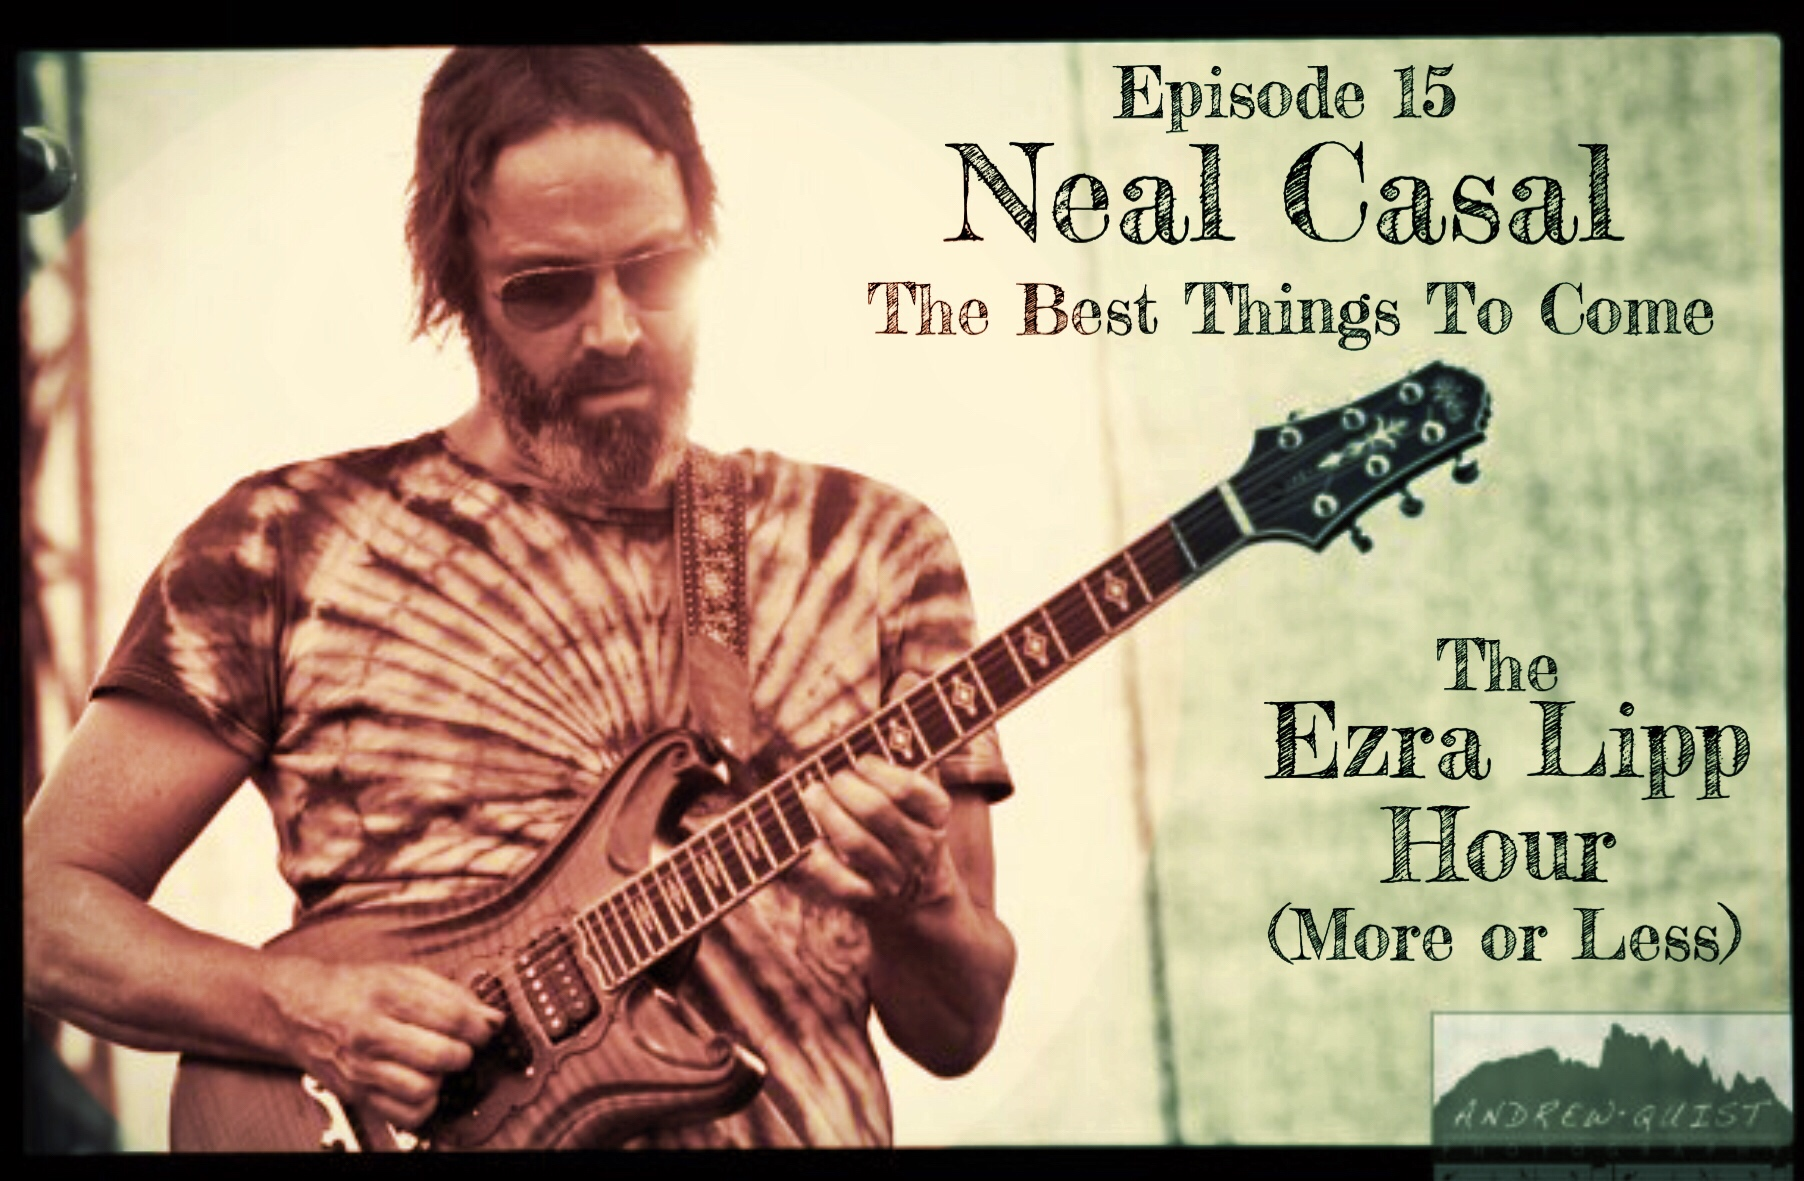 Neal Casal The Ezra Lipp Hour (More or Less) Episode 15 Podcast Interview Andrew Quist Photography.jpg